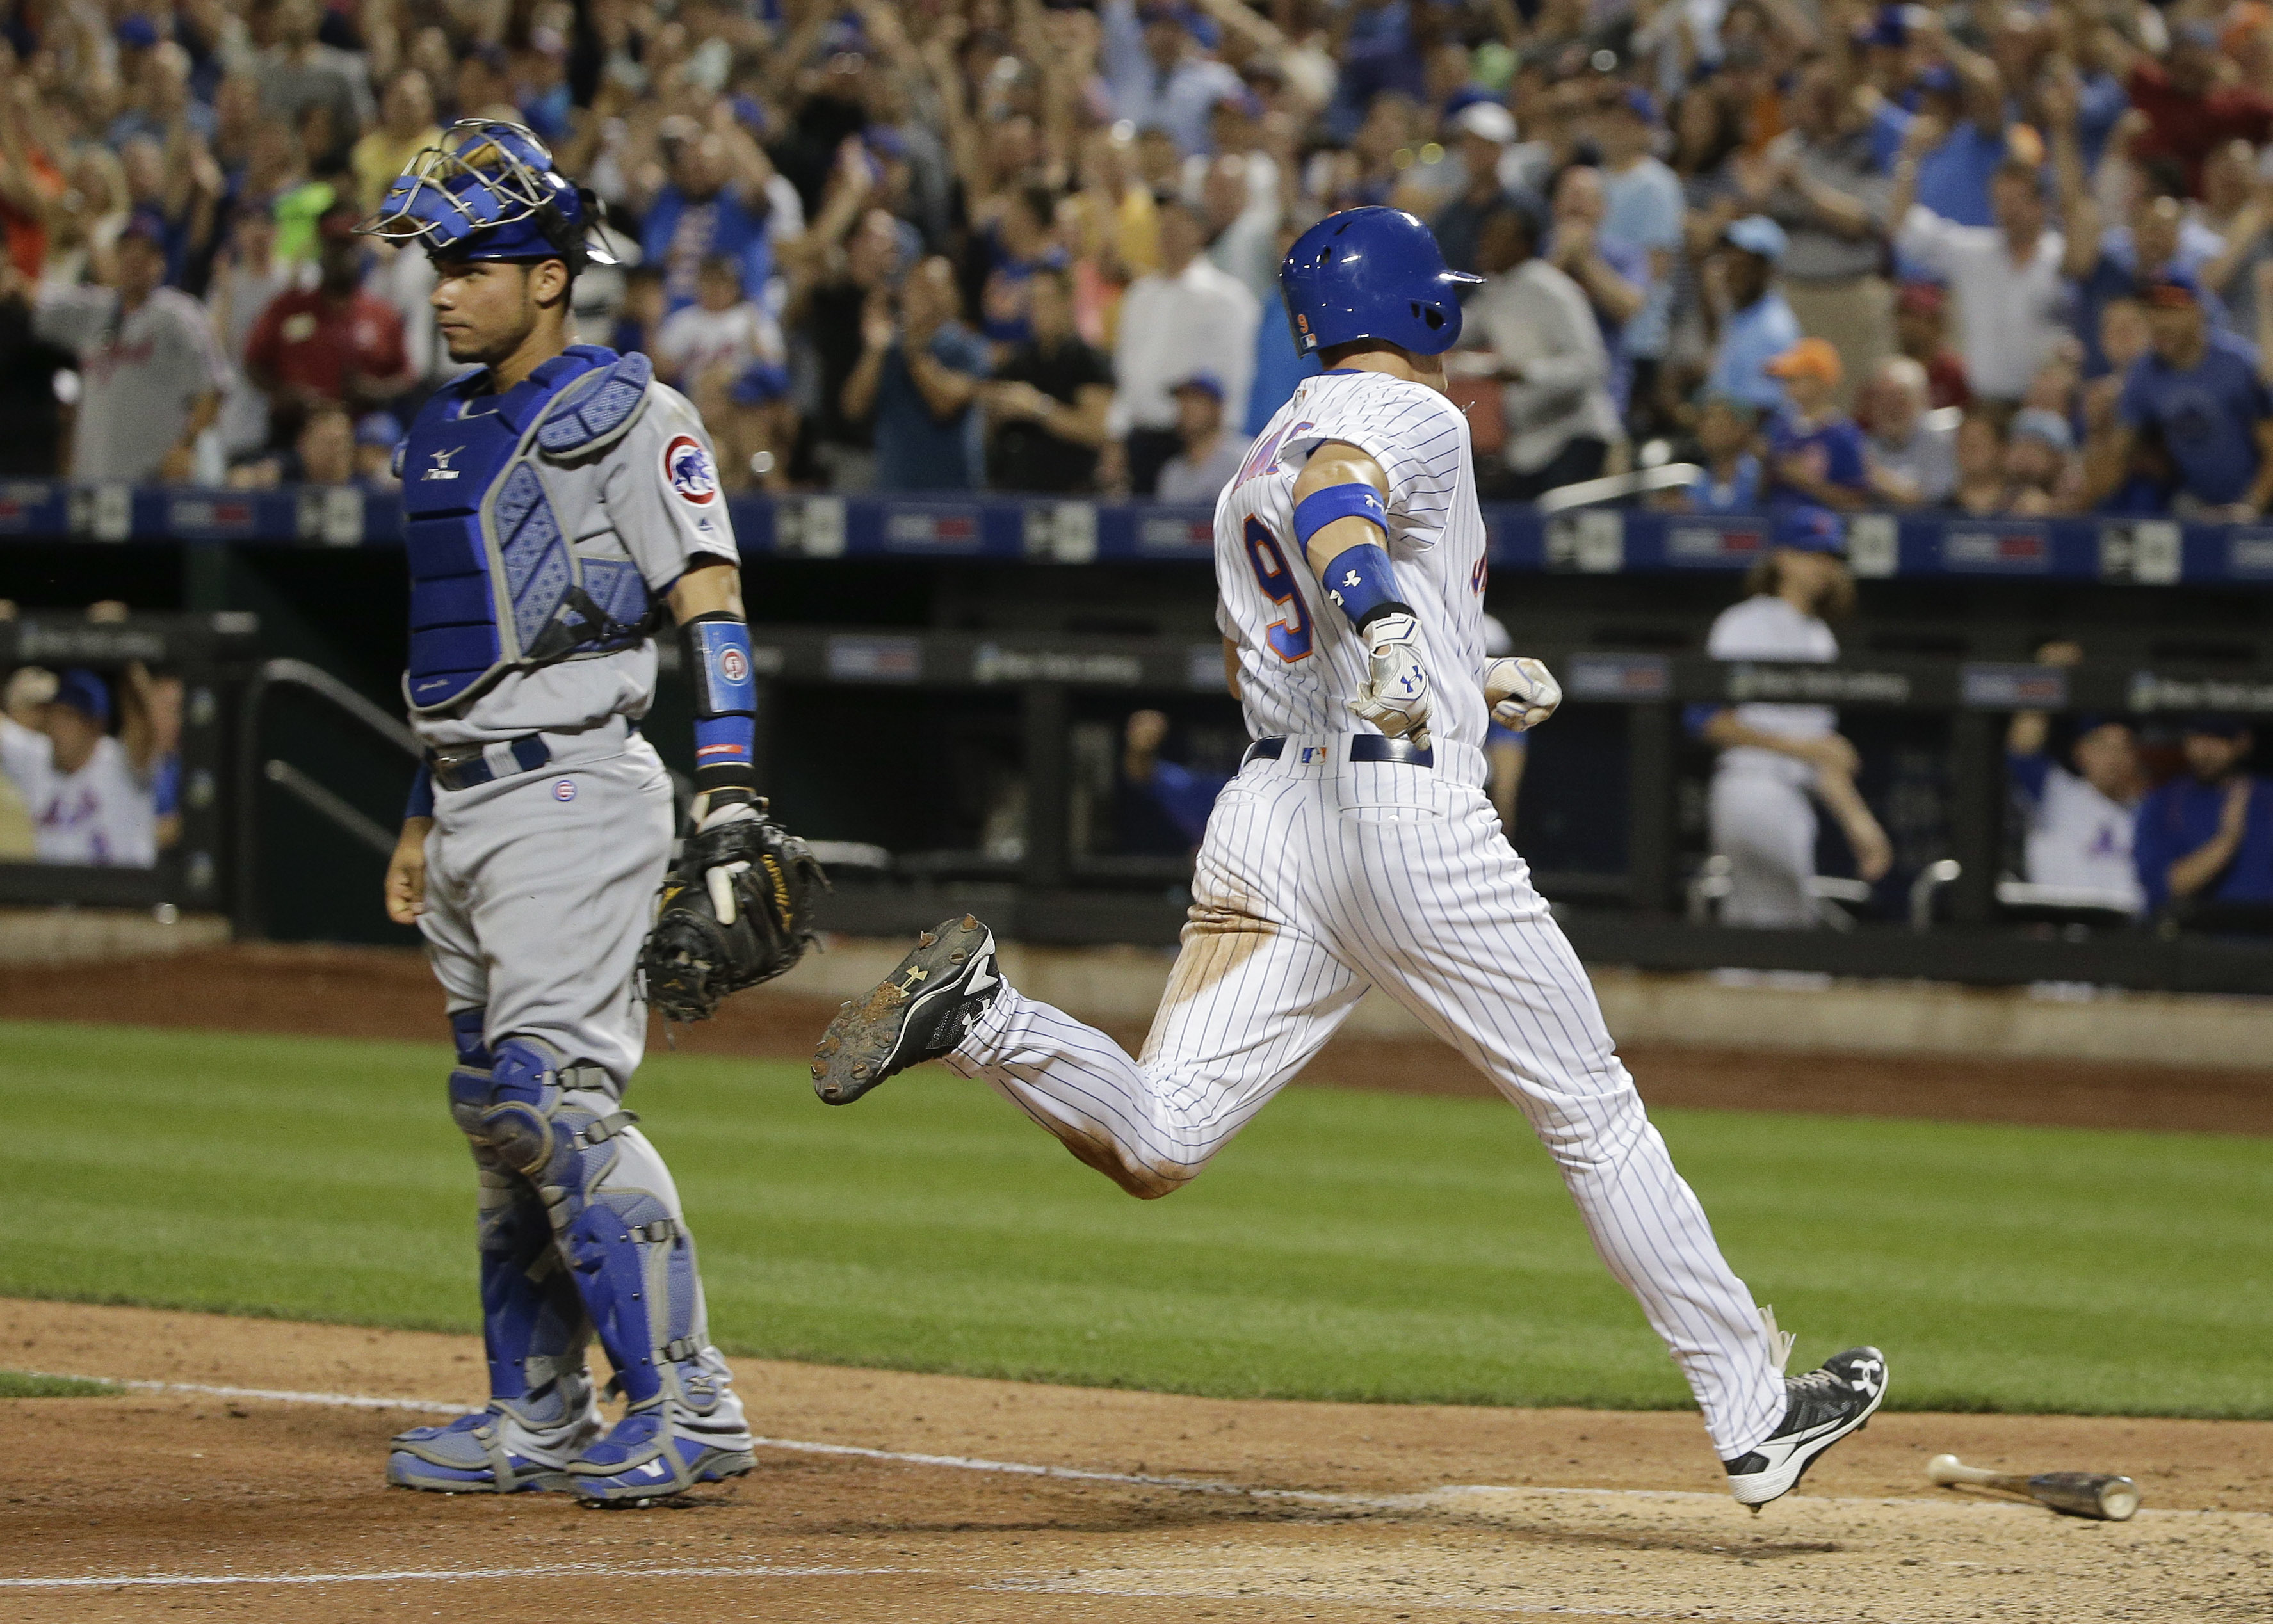 New York Mets' Brandon Nimmo (9) scores on an error by Chicago Cubs second baseman Javier Baez during the seventh inning of a baseball game, Thursday, June 30, 2016, in New York. Cubs catcher Willson Contreras is at left. (AP Photo/Julie Jacobson)